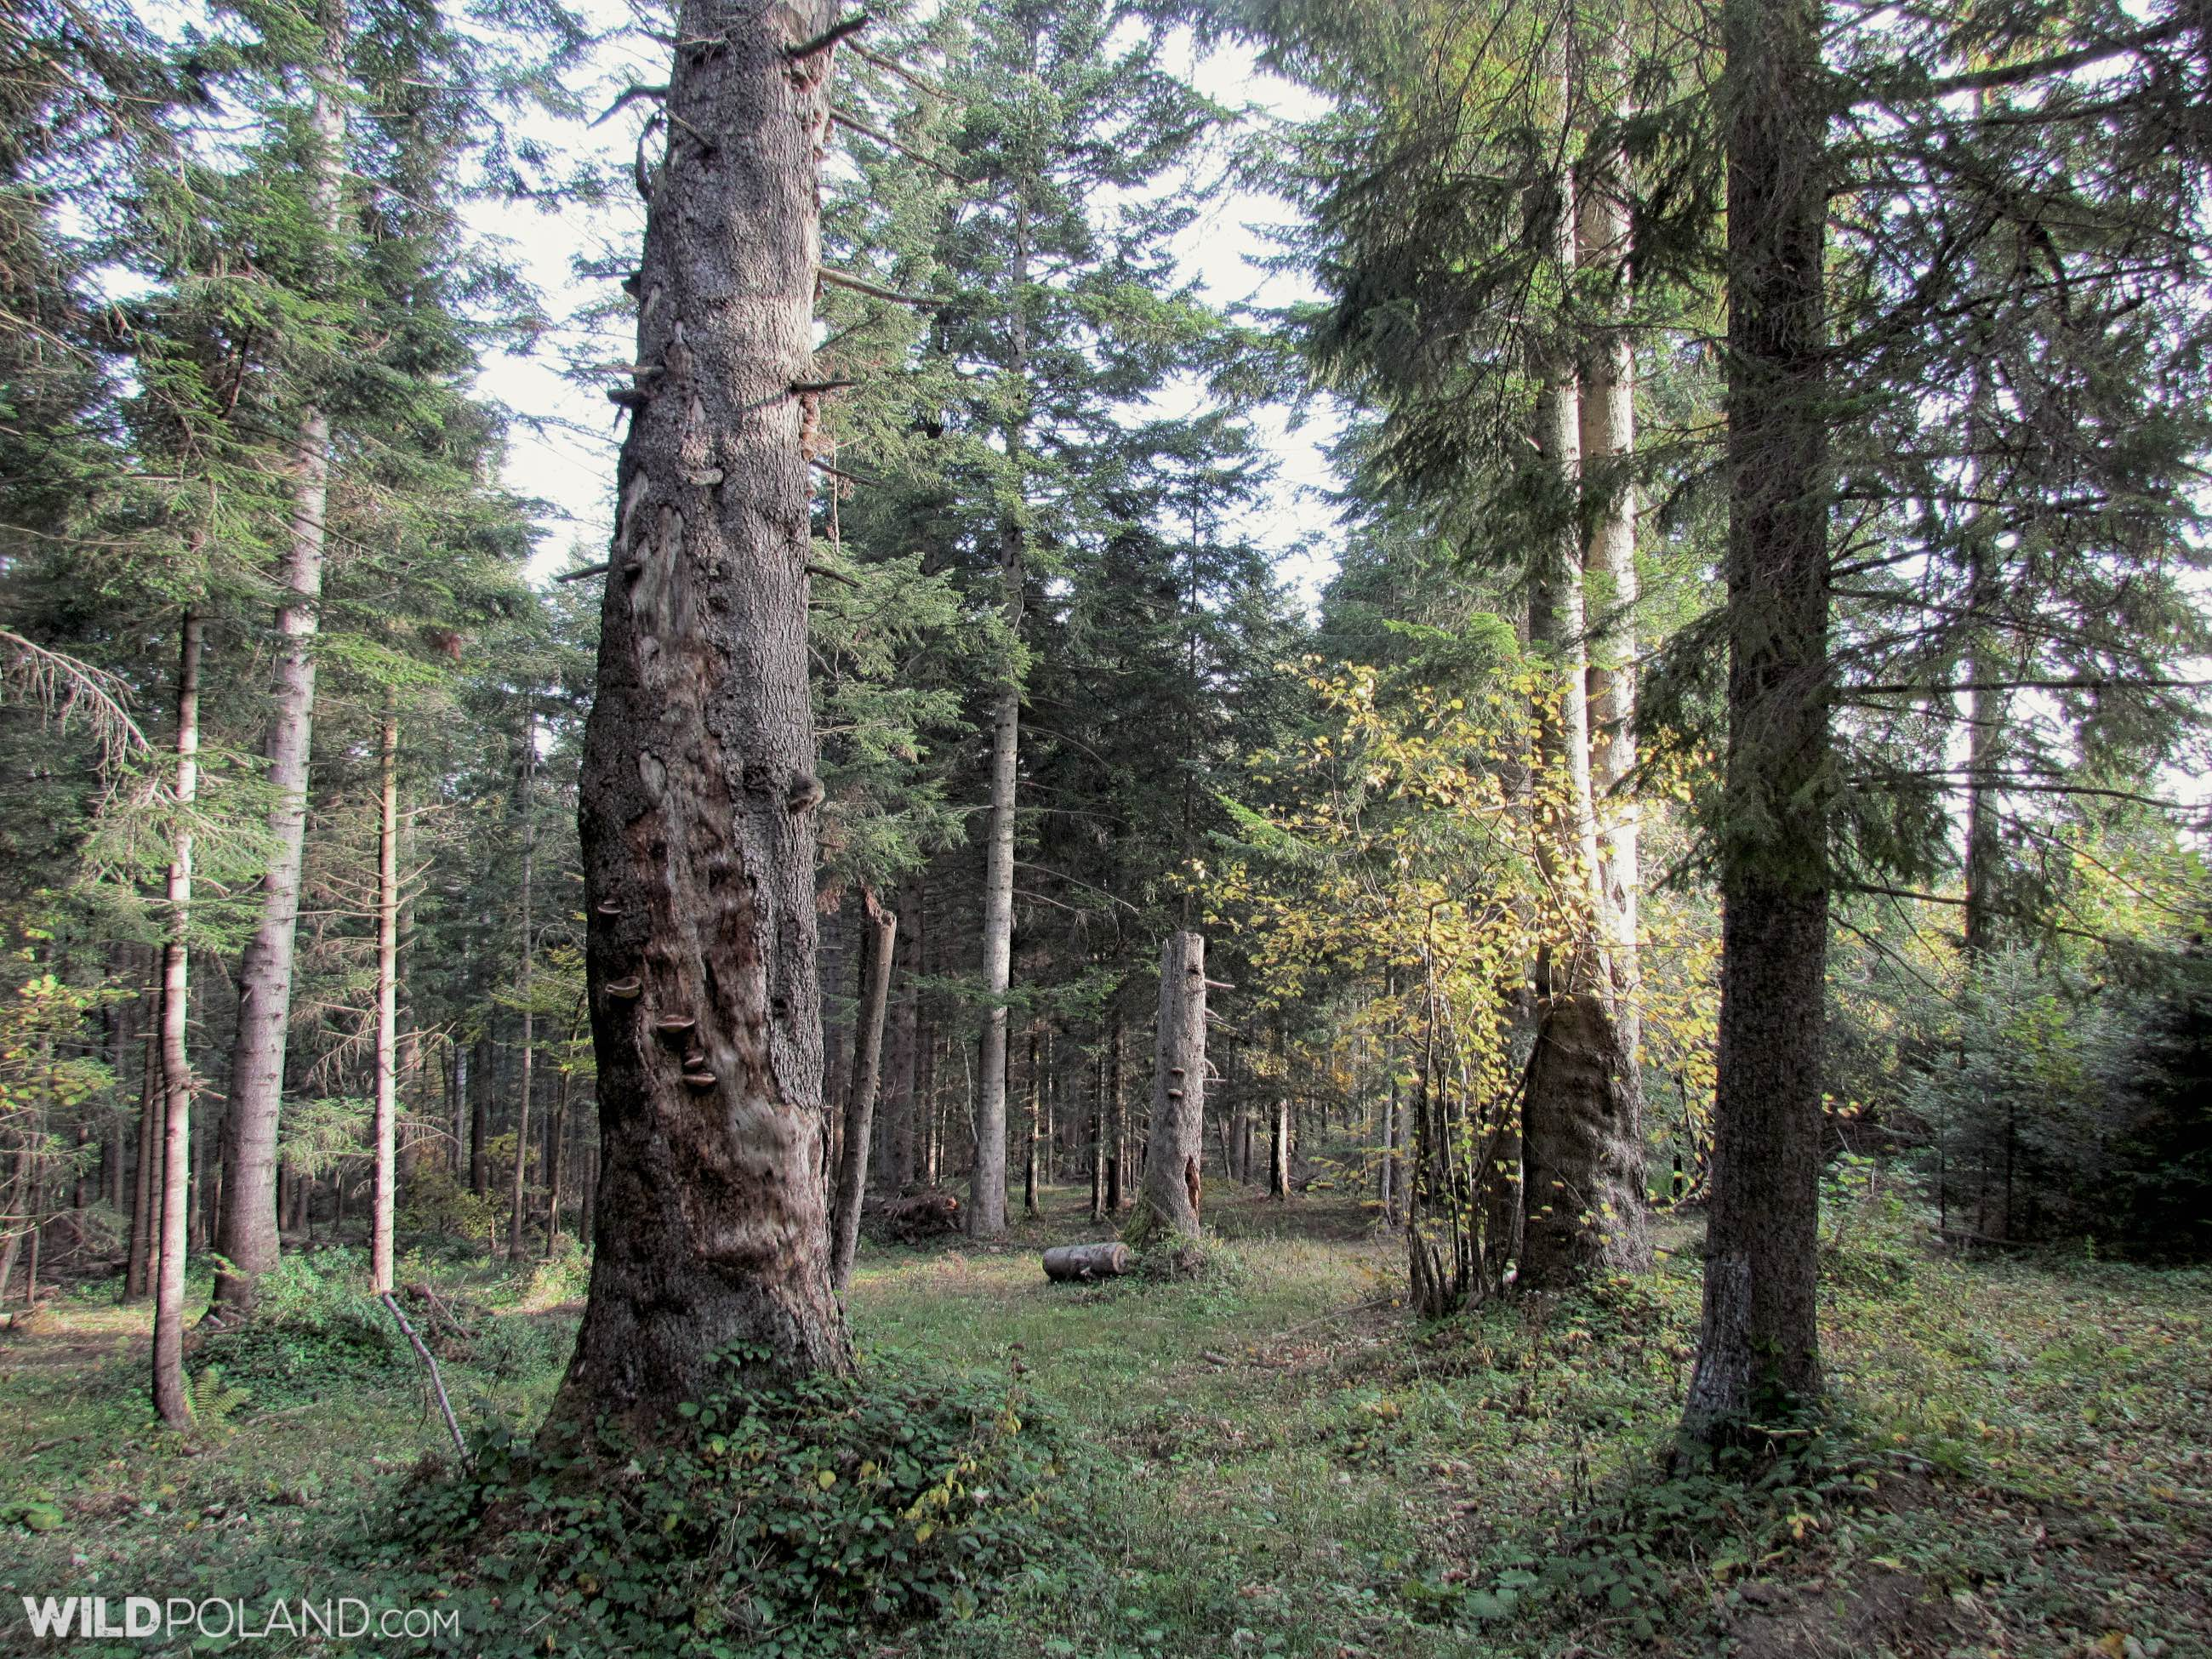 Old growth trees in the Carpathian Forest, Bieszczady Mts